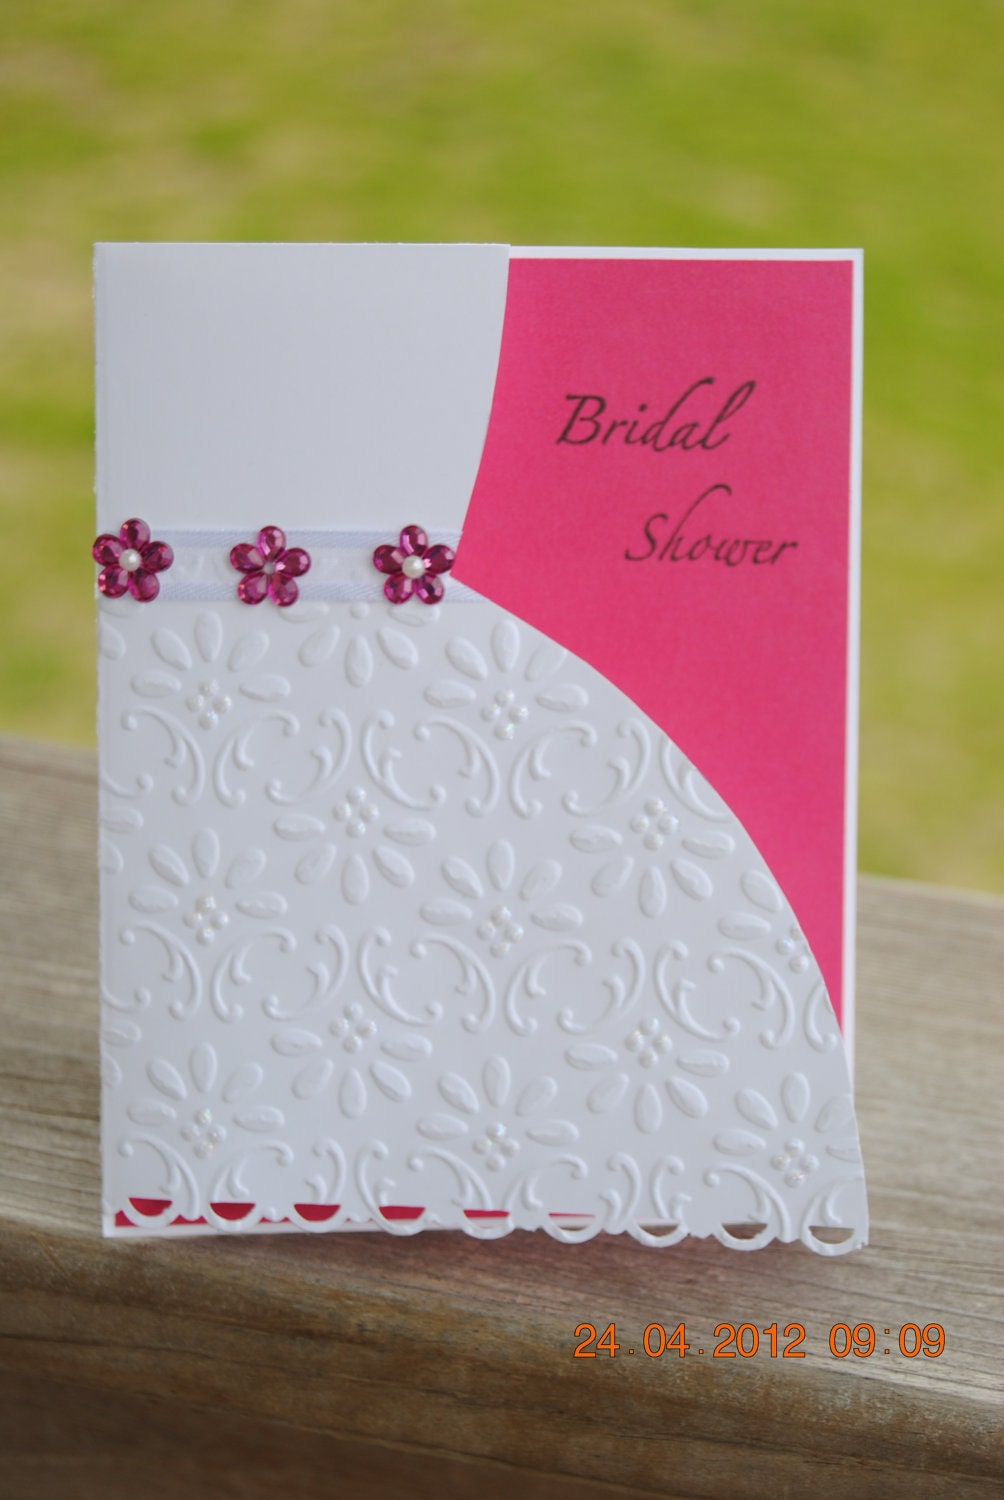 Gift Card Or Check For Wedding Gift : Handcrafted Embossed Bridal Shower Card by PaperBlossomsbyAmy